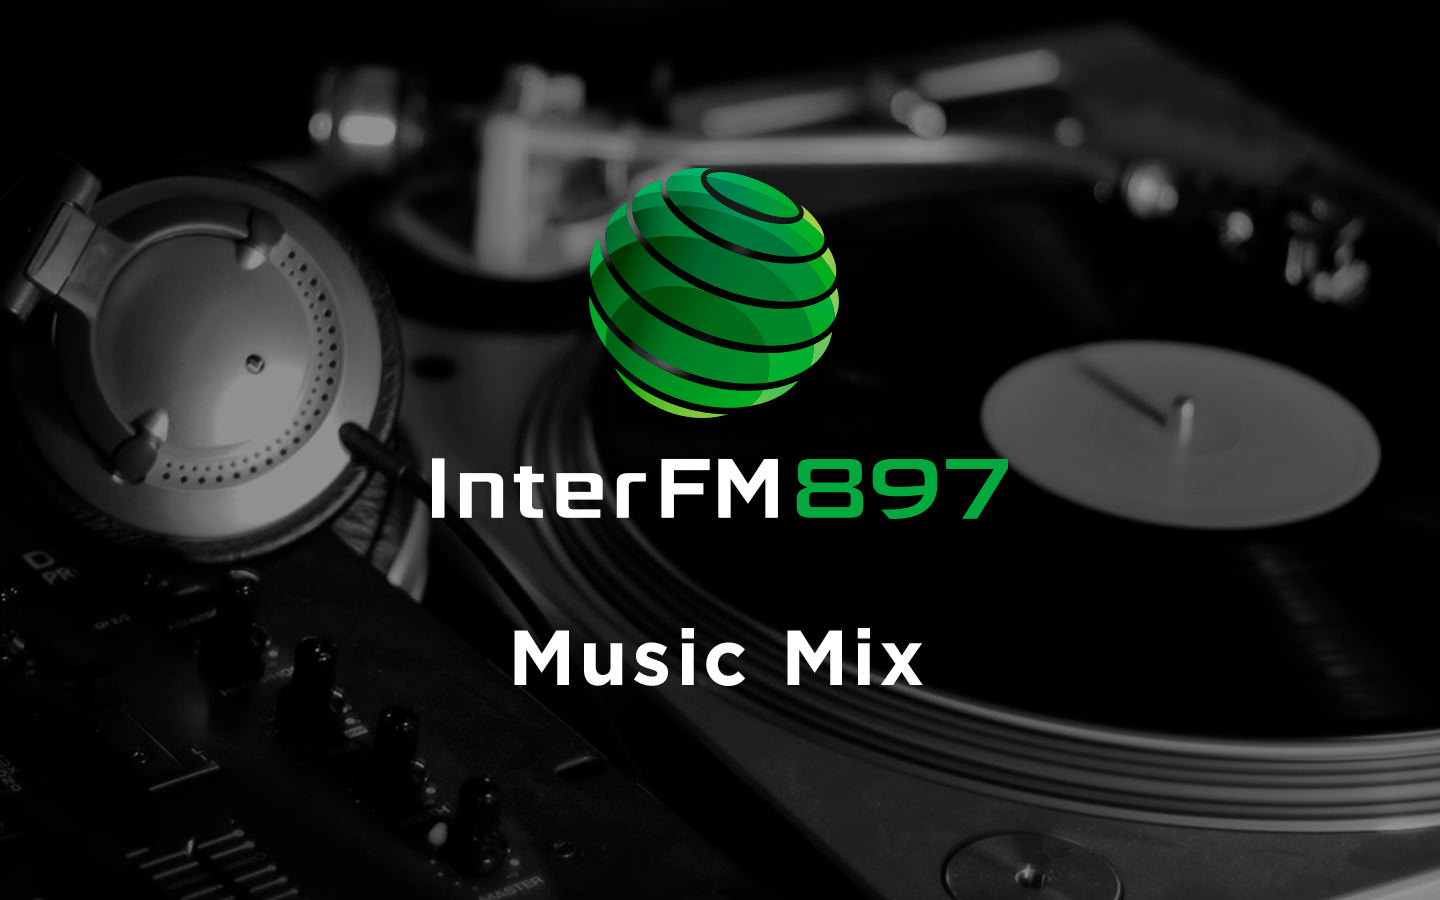 InterFM897 Music Mix